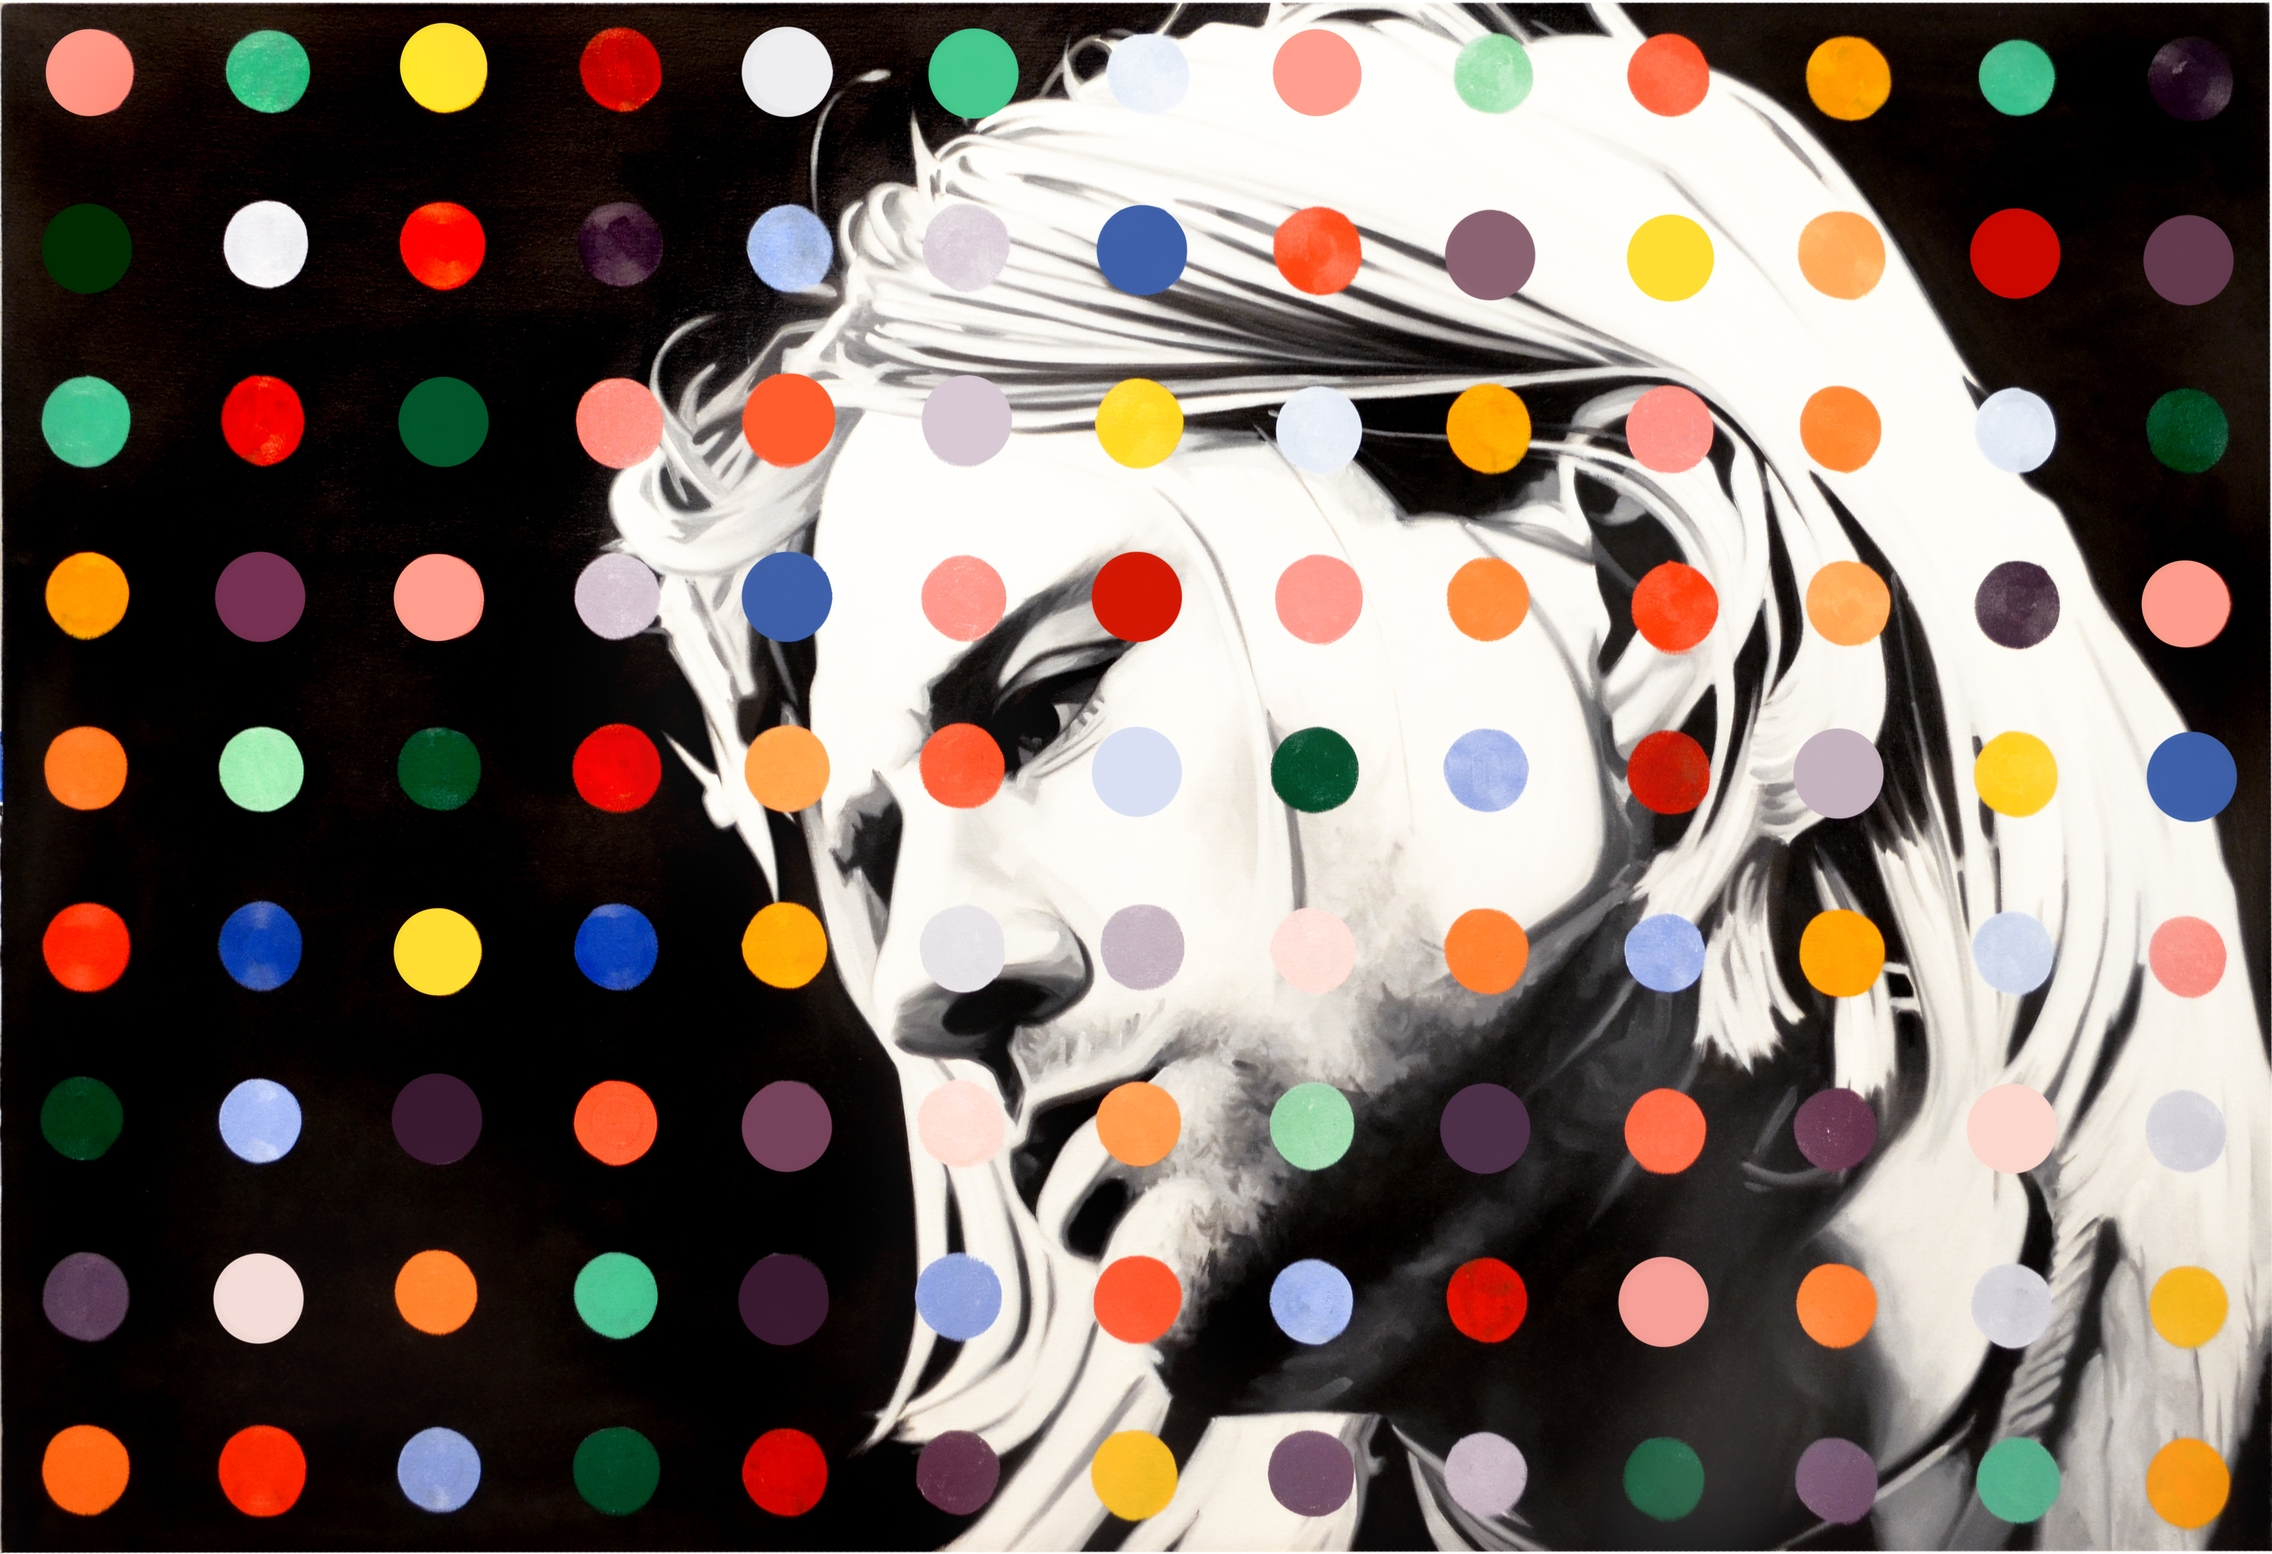 Kurt Dot  Oil on Canvas  -  41 x 60in  -  2013                                         SOLD